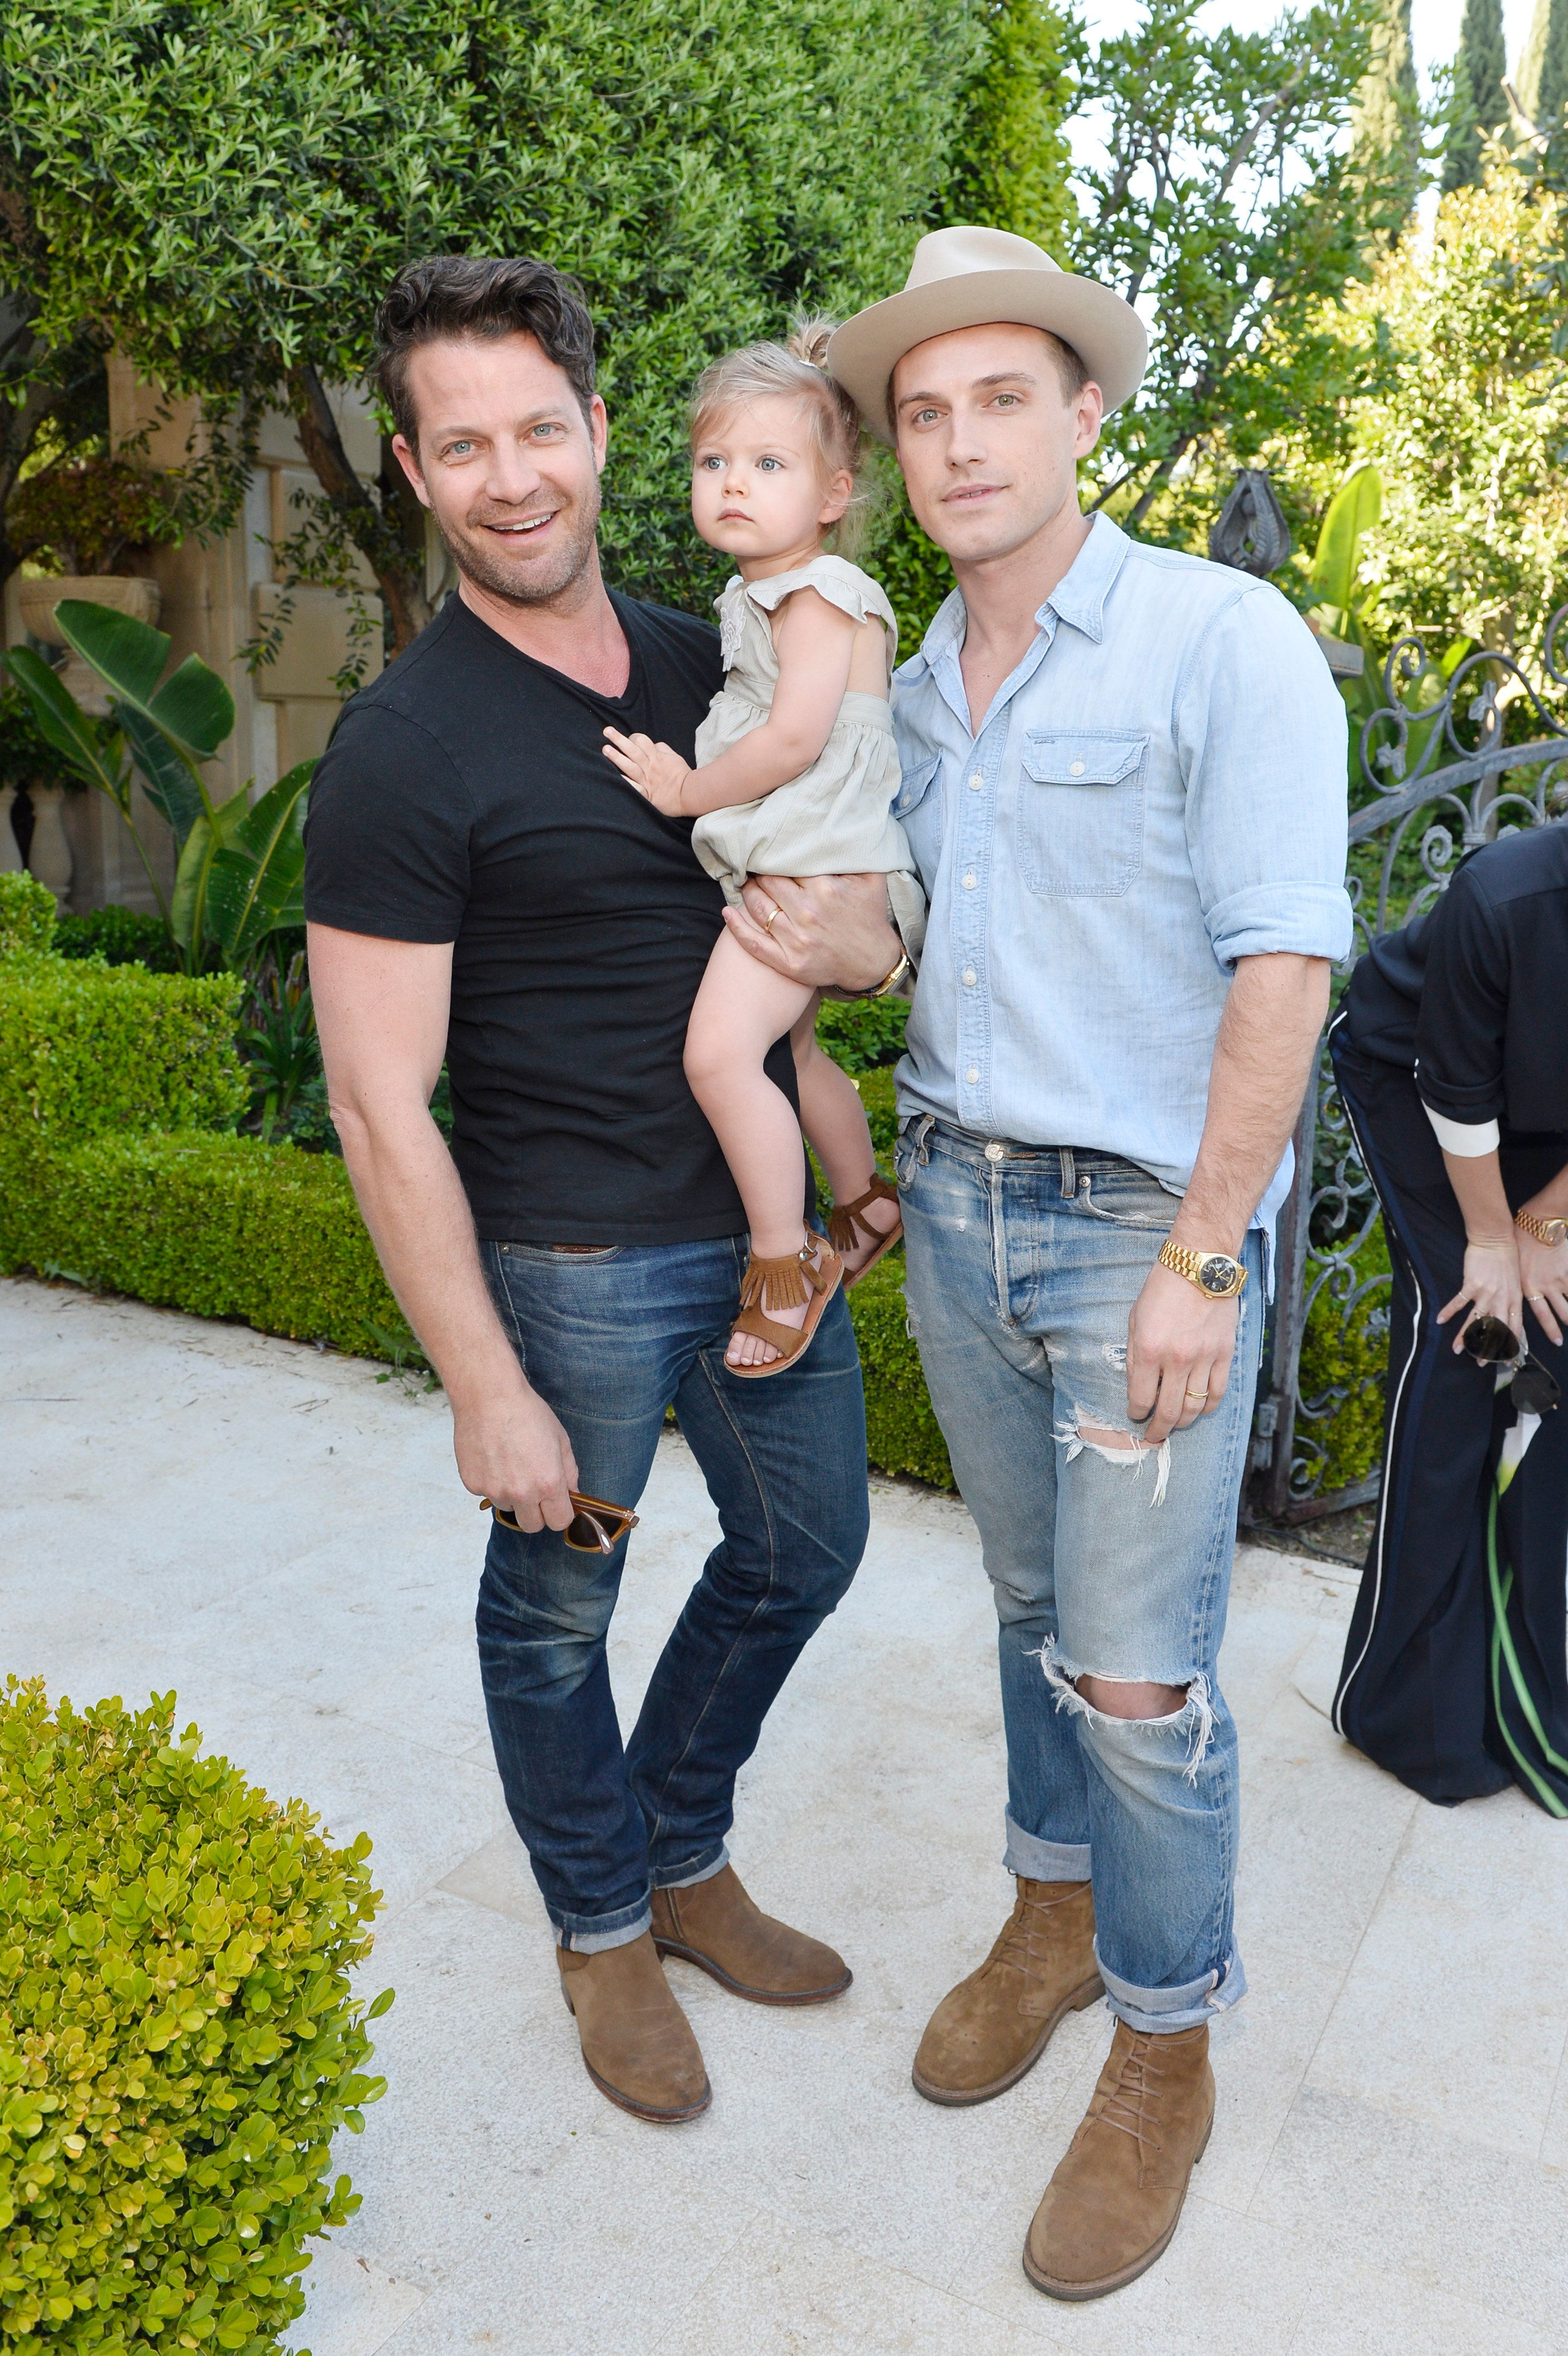 LOS ANGELES, CA - APRIL 01:  (L-R) Designer Nate Berkus, Poppy Brent-Berkus, and Jeremiah Brent attend the Victoria Beckham for Target Launch Event on April 1, 2017 in Los Angeles, California.  (Photo by Stefanie Keenan/ Getty Images for Target)